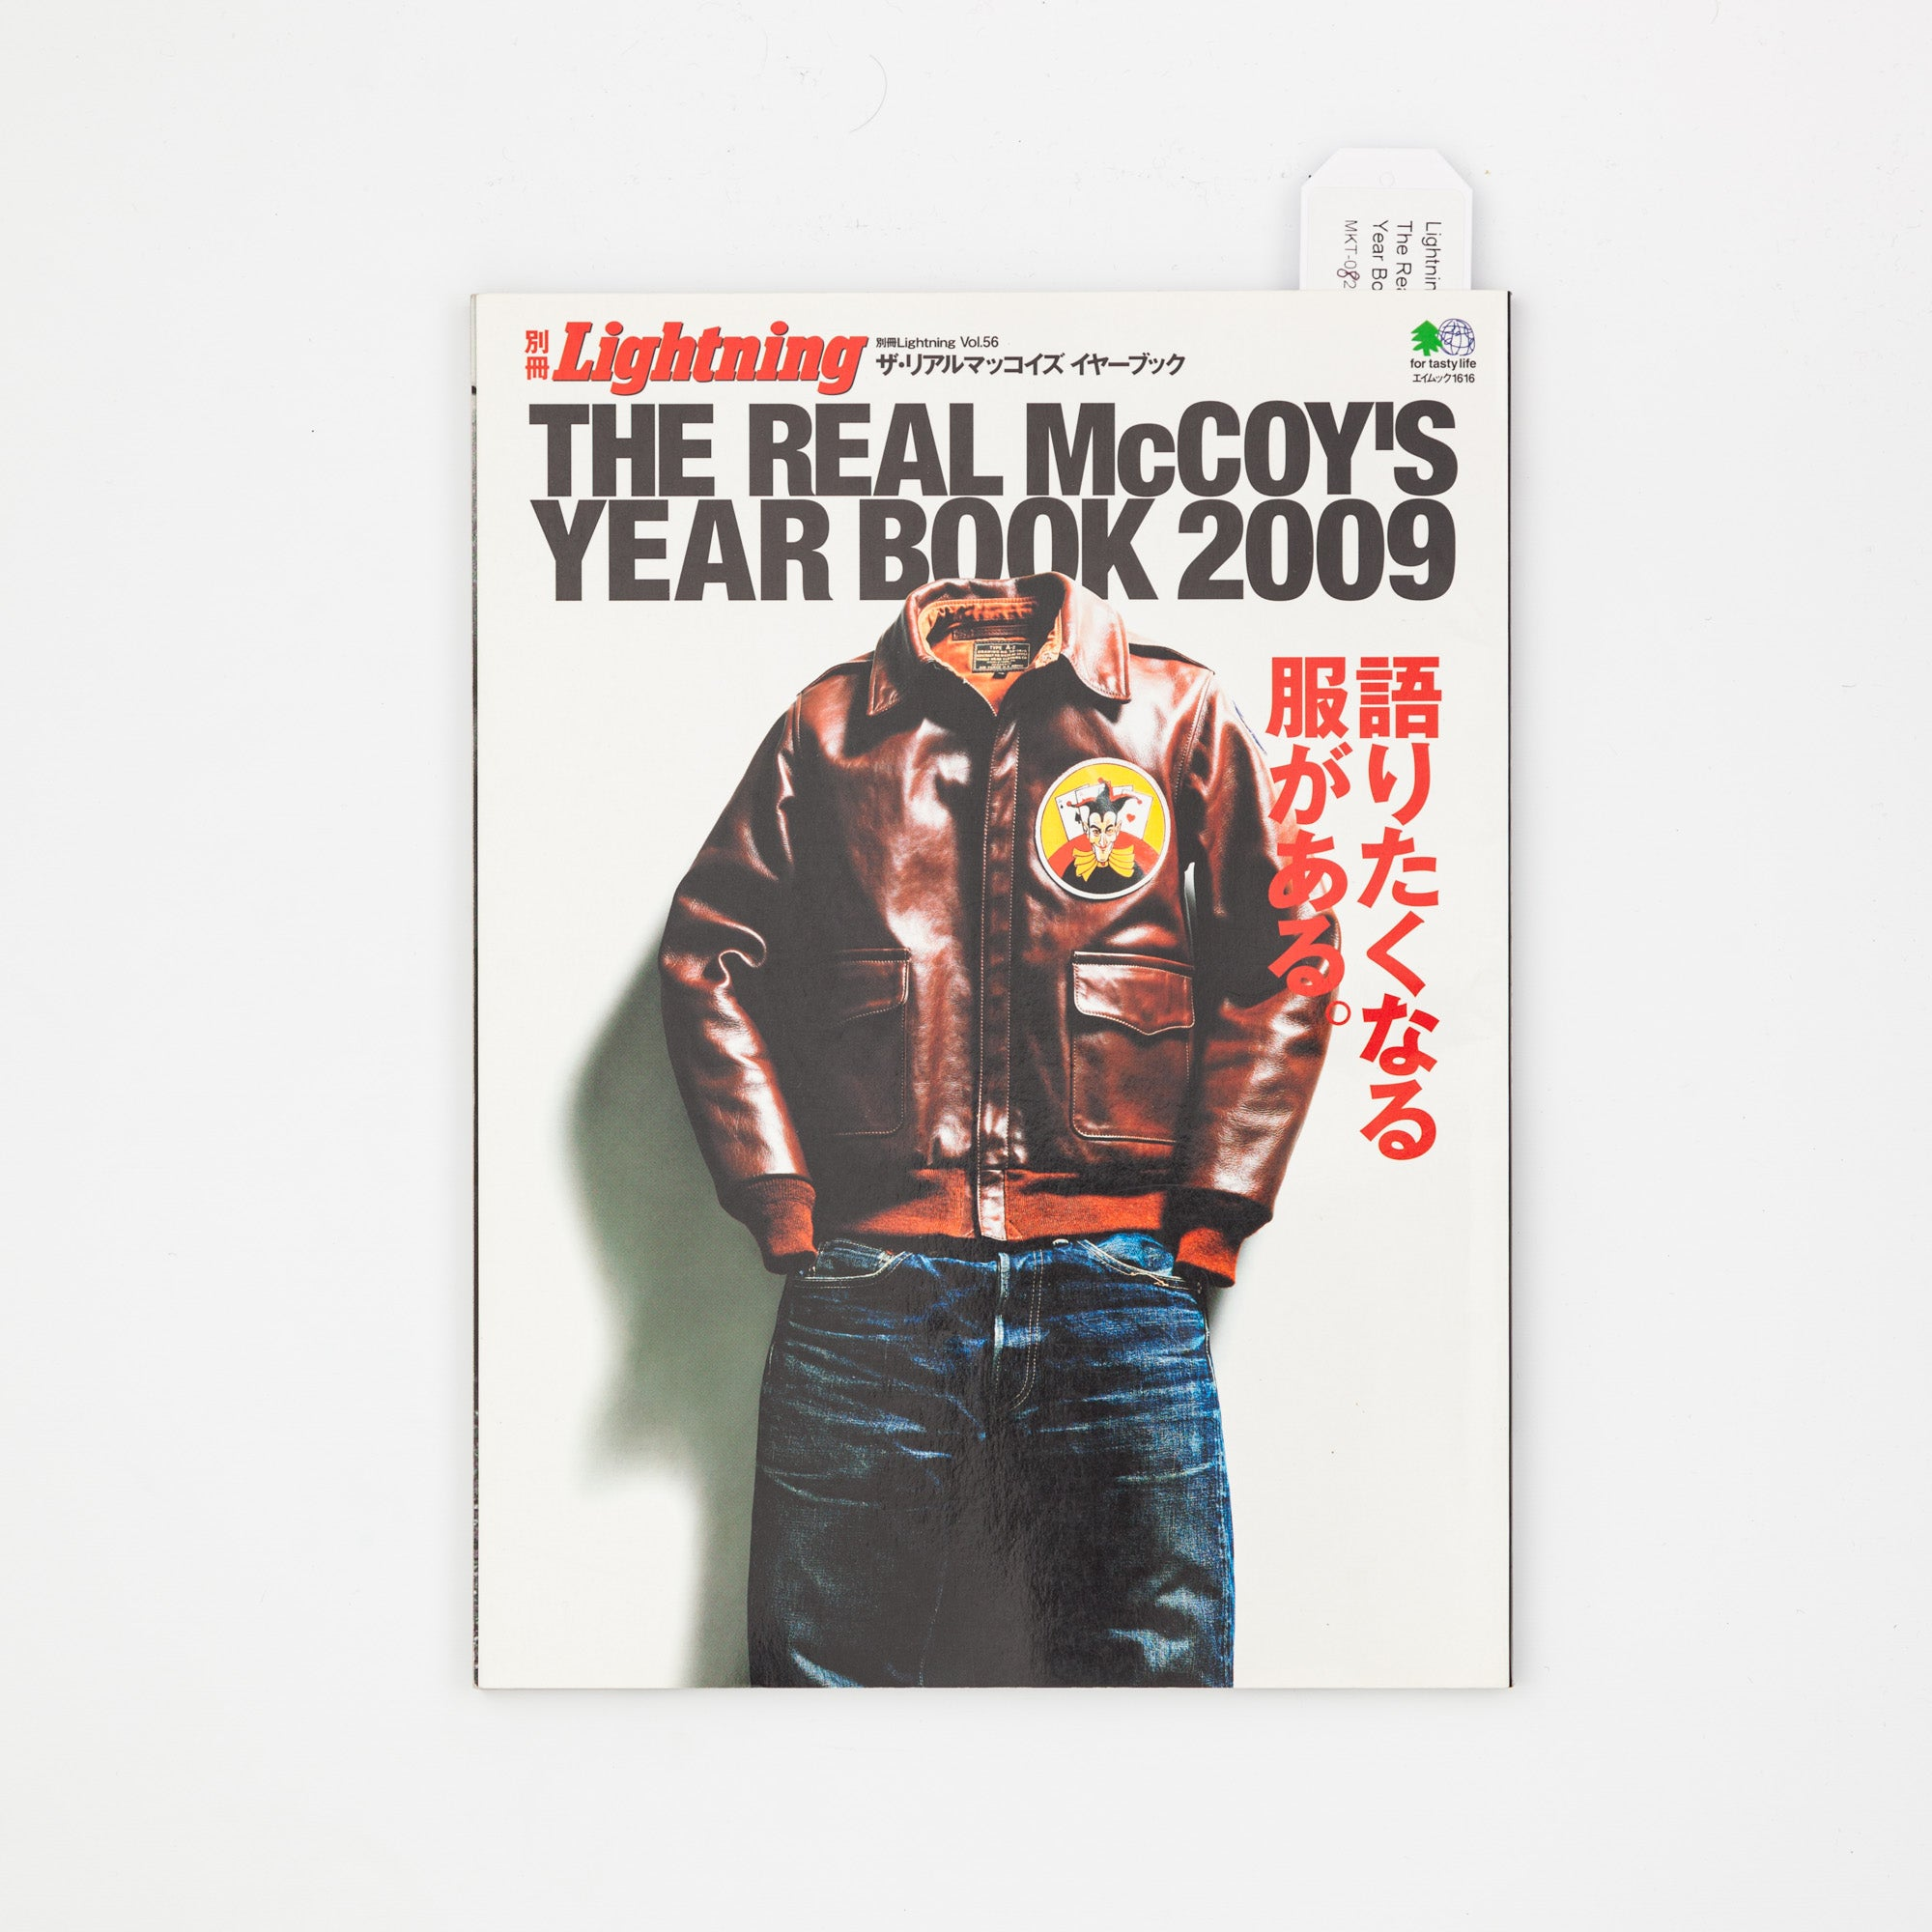 The Real McCoy's Year Book 2009